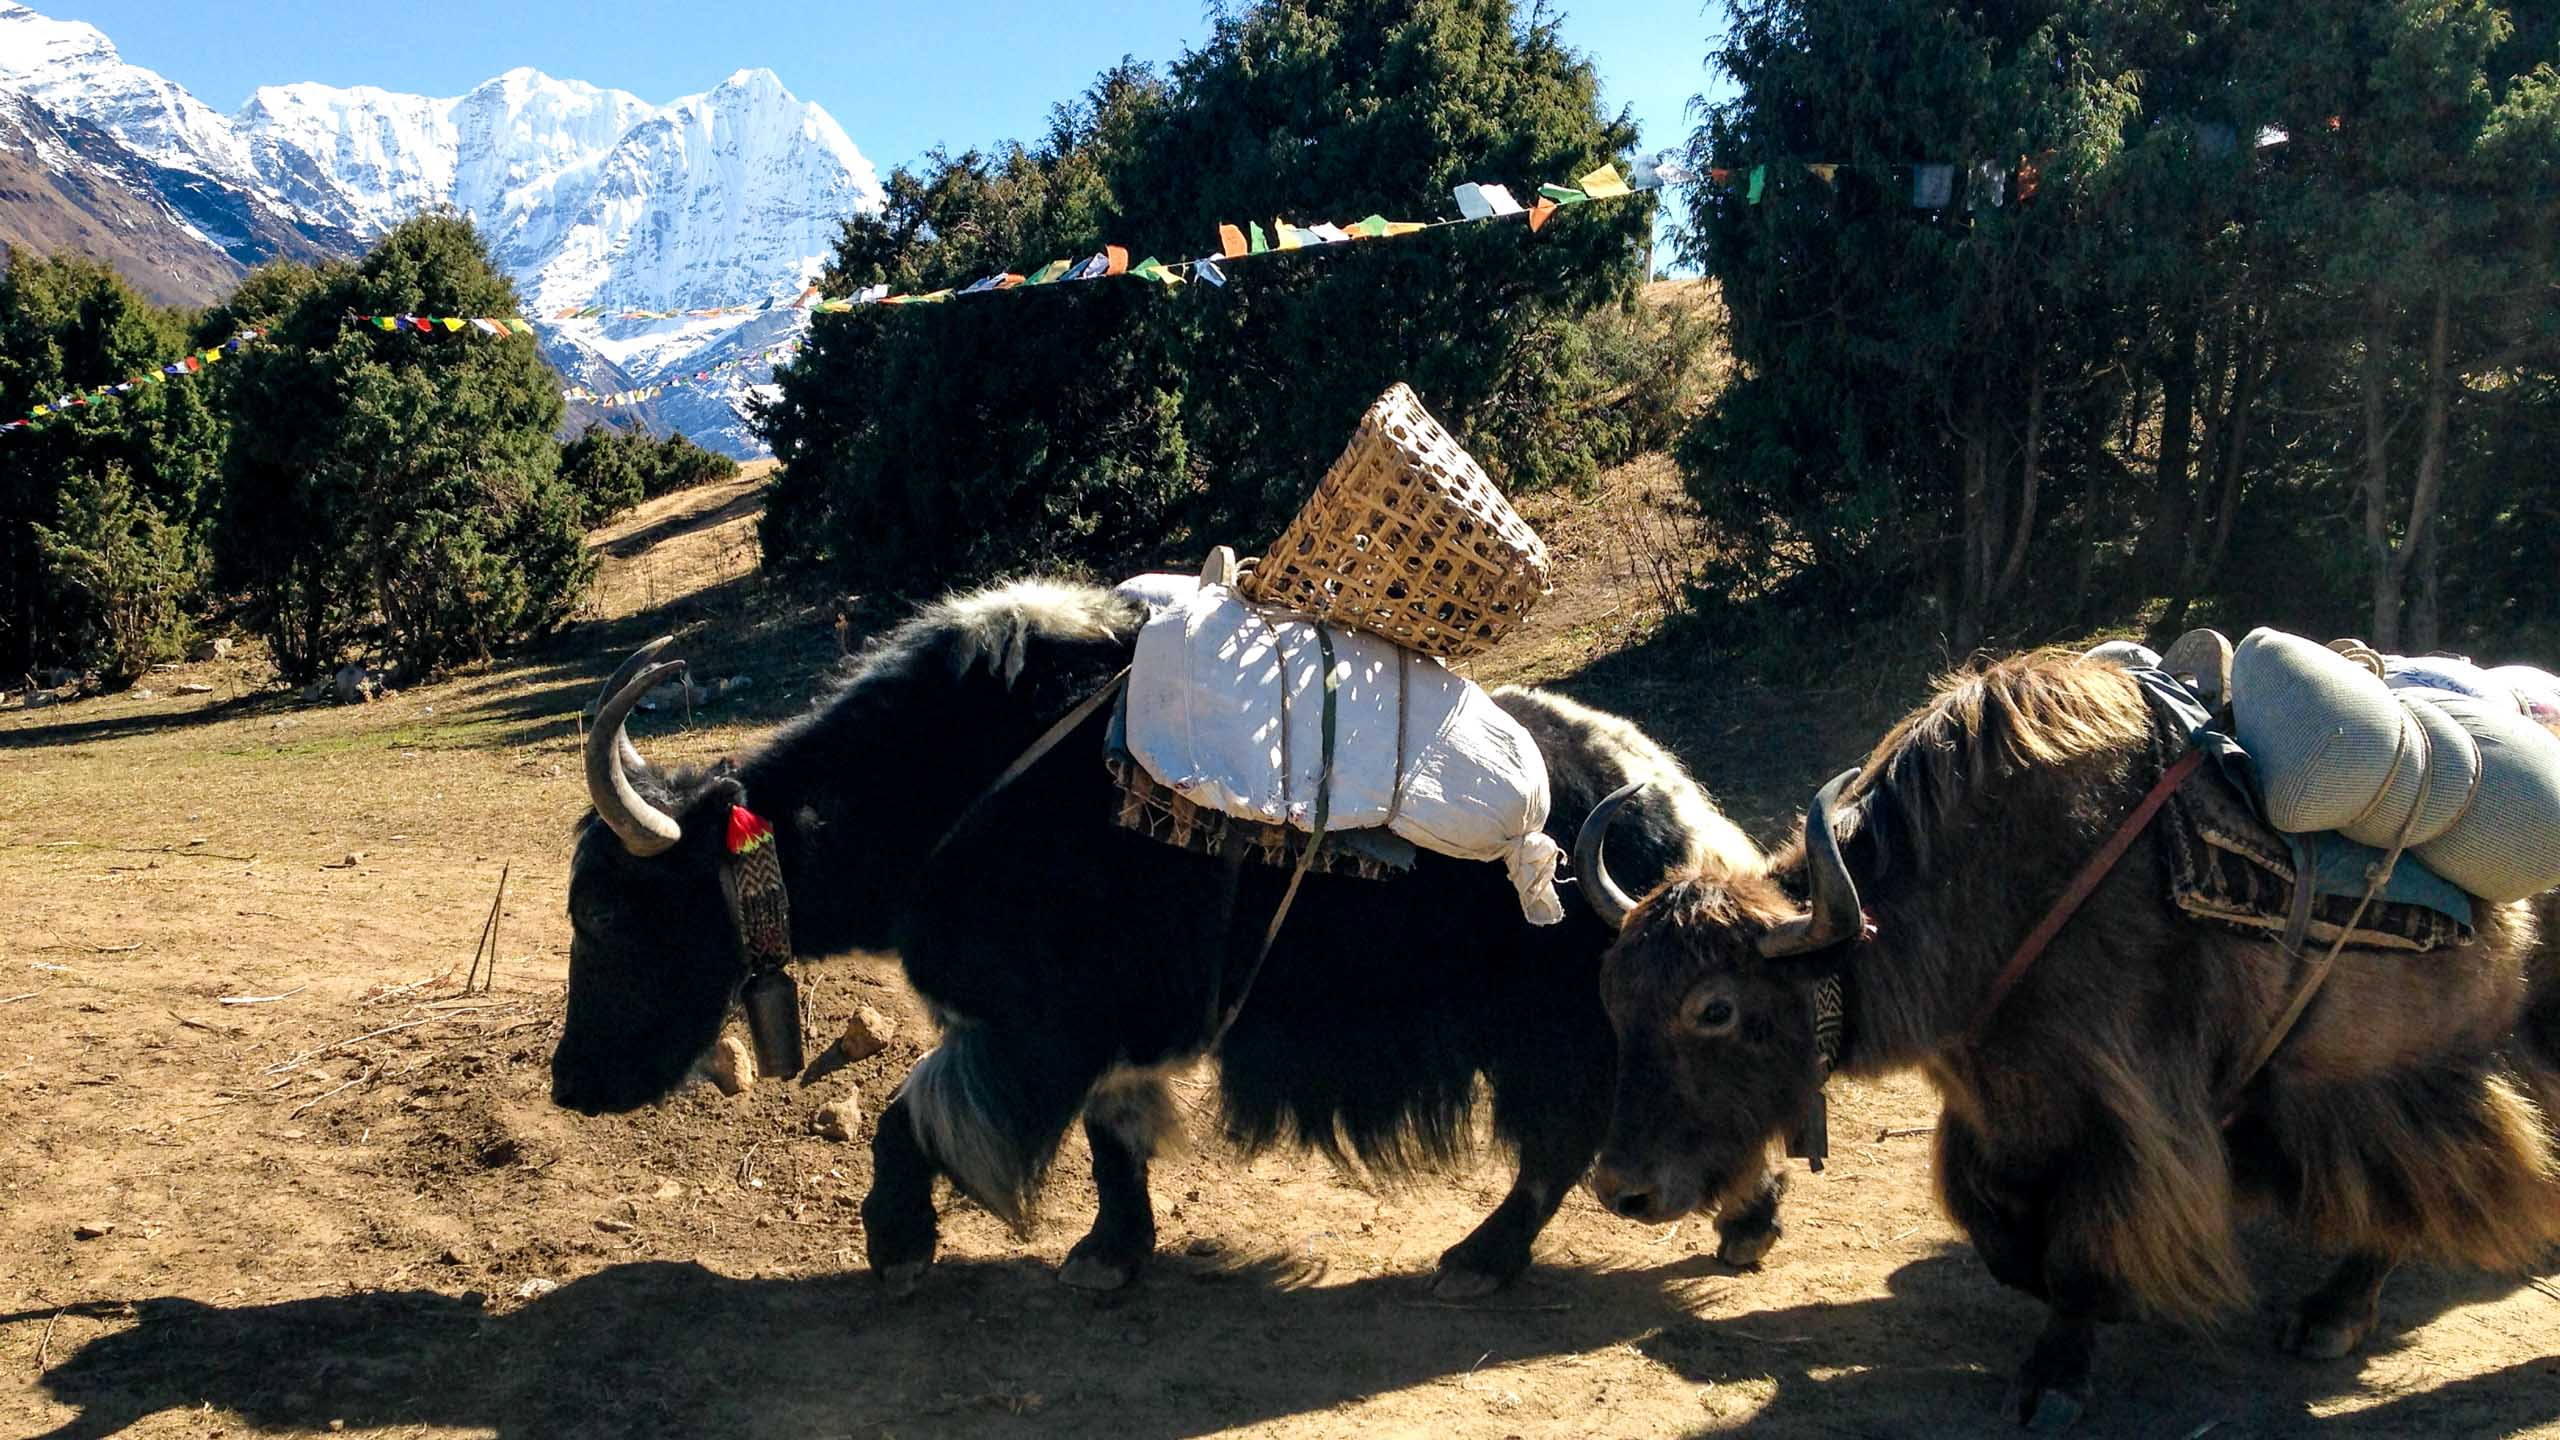 Pack yaks assist on Everest hiking trip